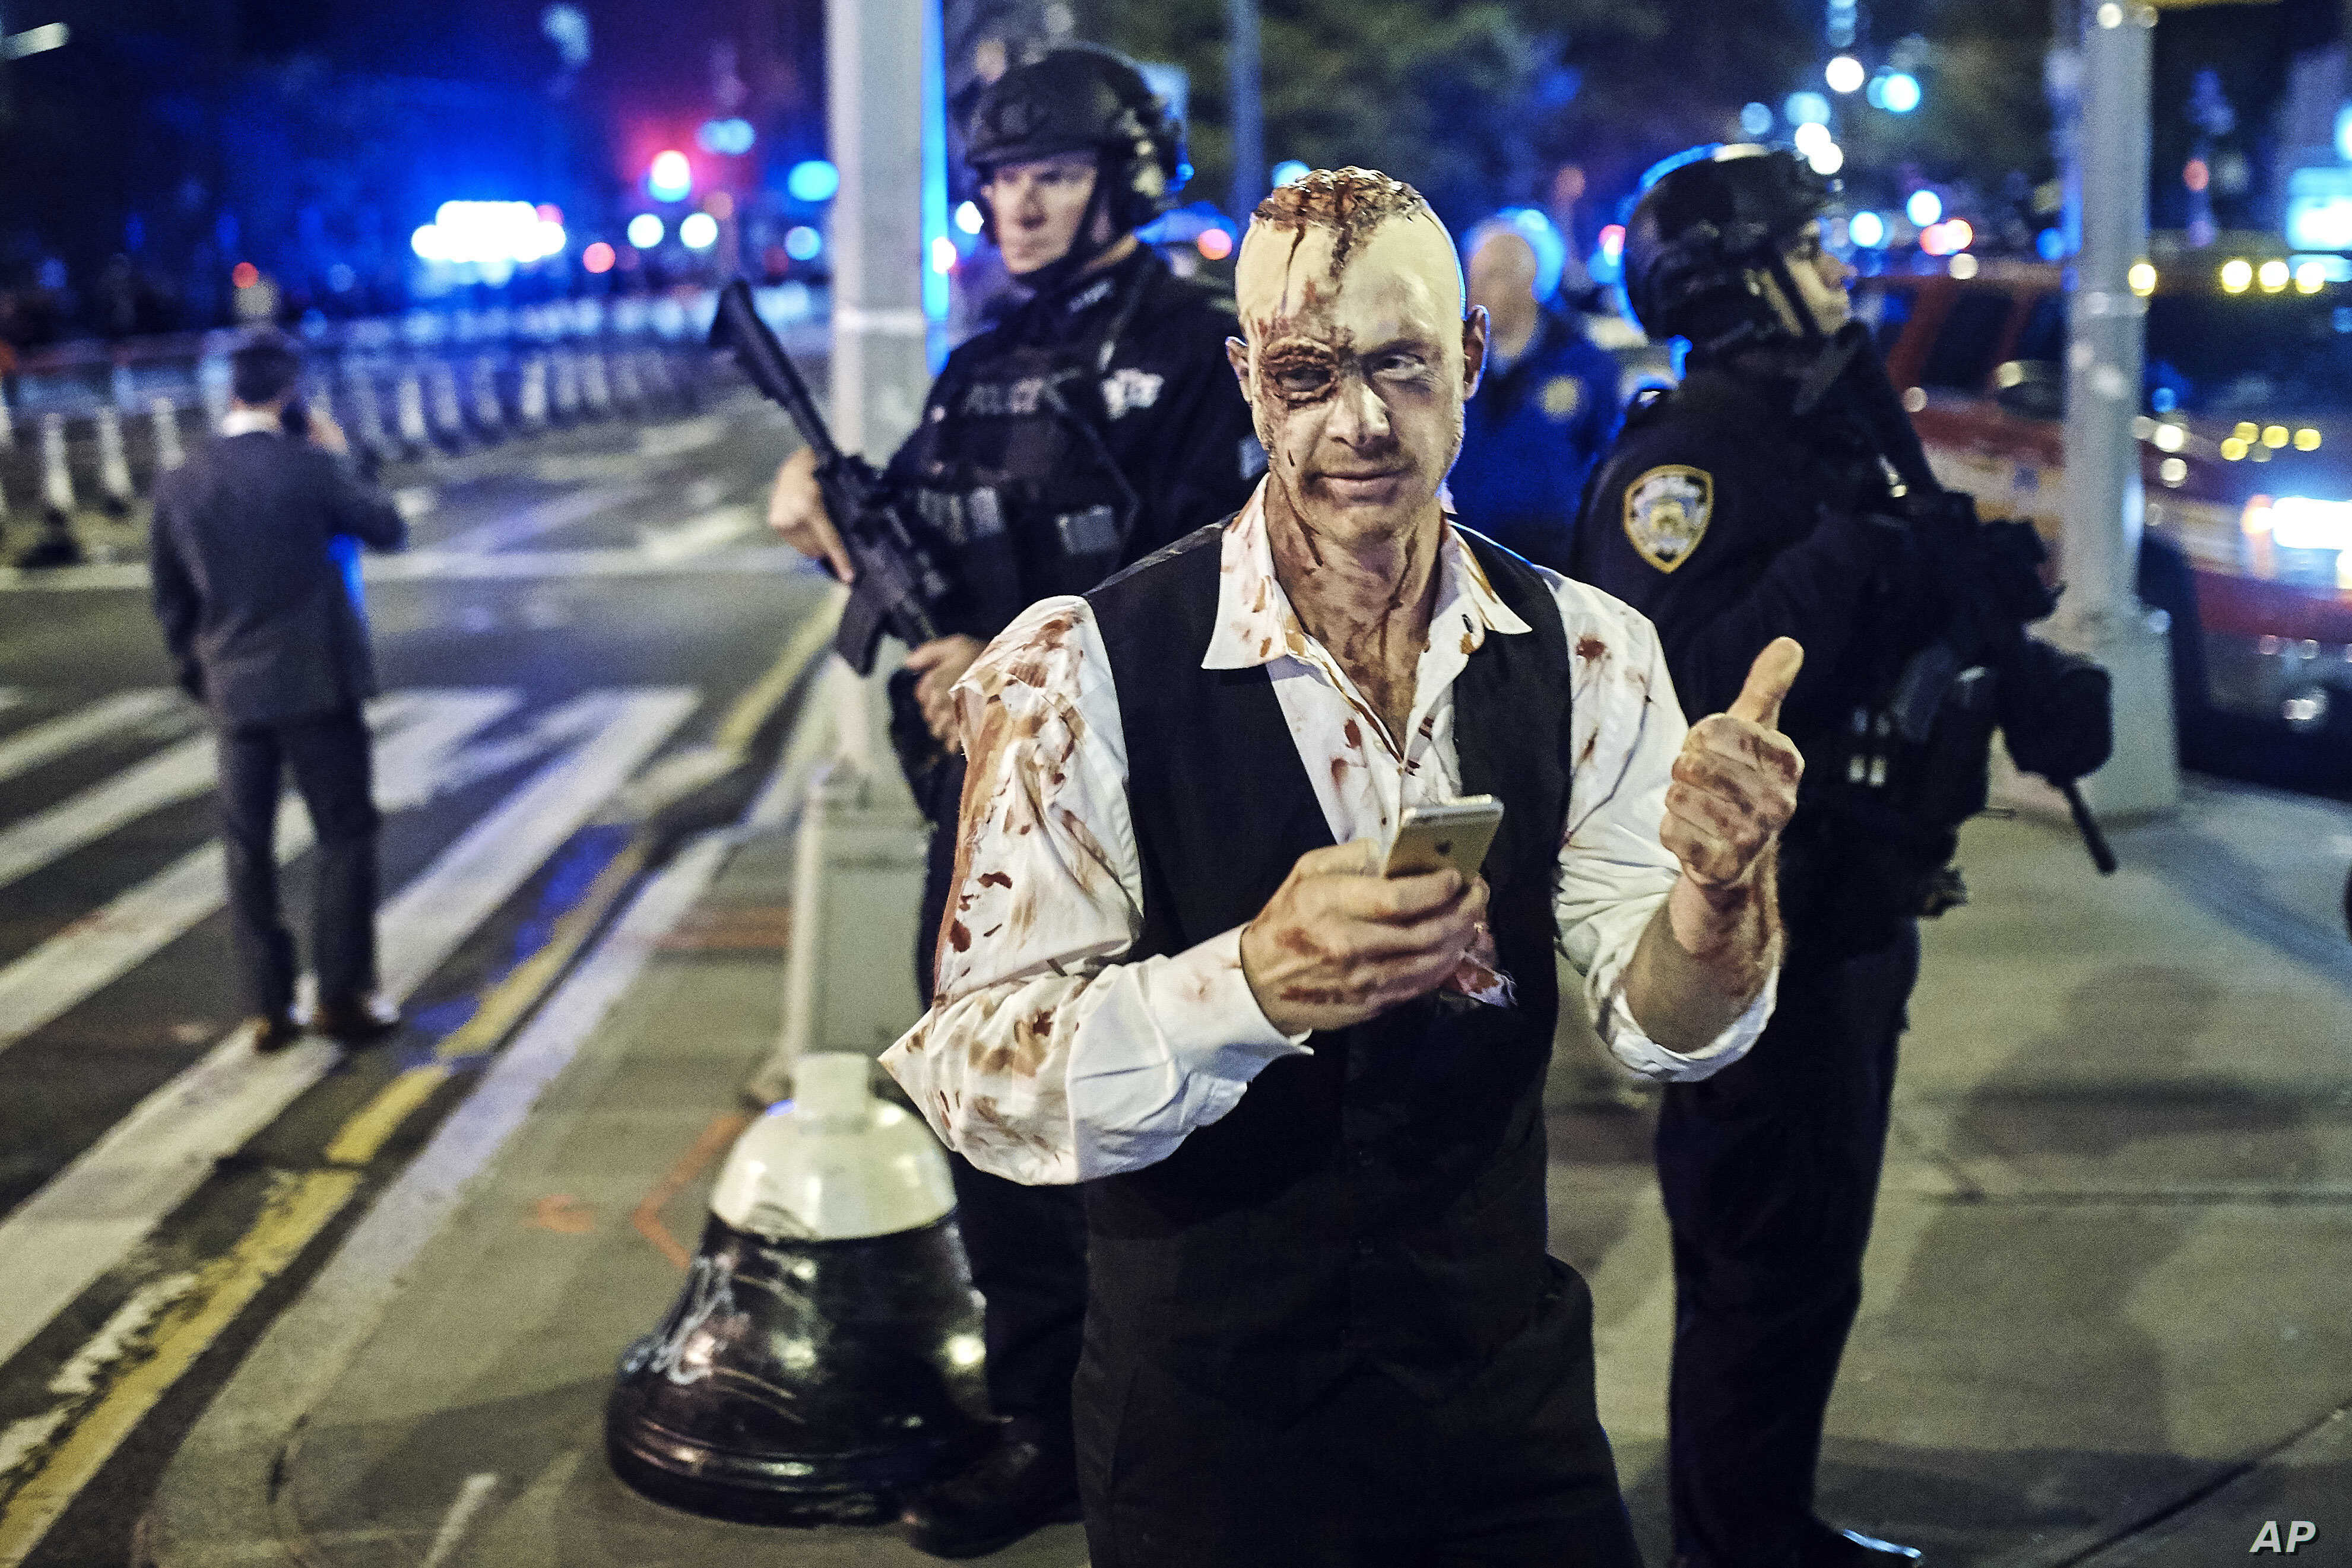 Halloween New York 2019.More Security For Nyc Halloween Parade A Year After Attack Voice